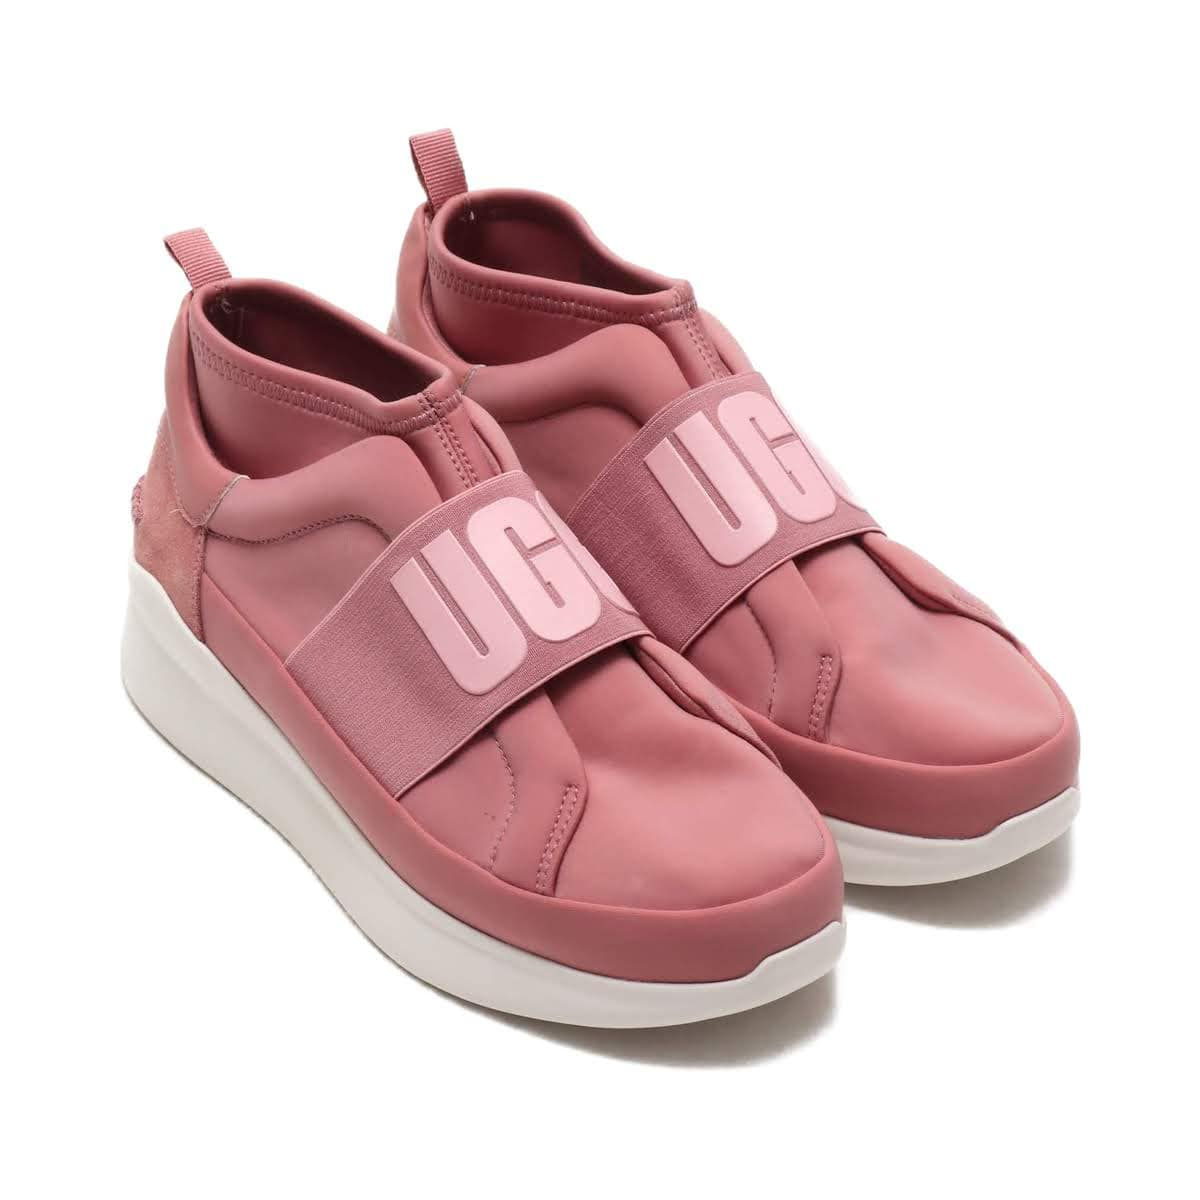 UGG Neutra Sneaker PINK DAWN 19SS-I_photo_large